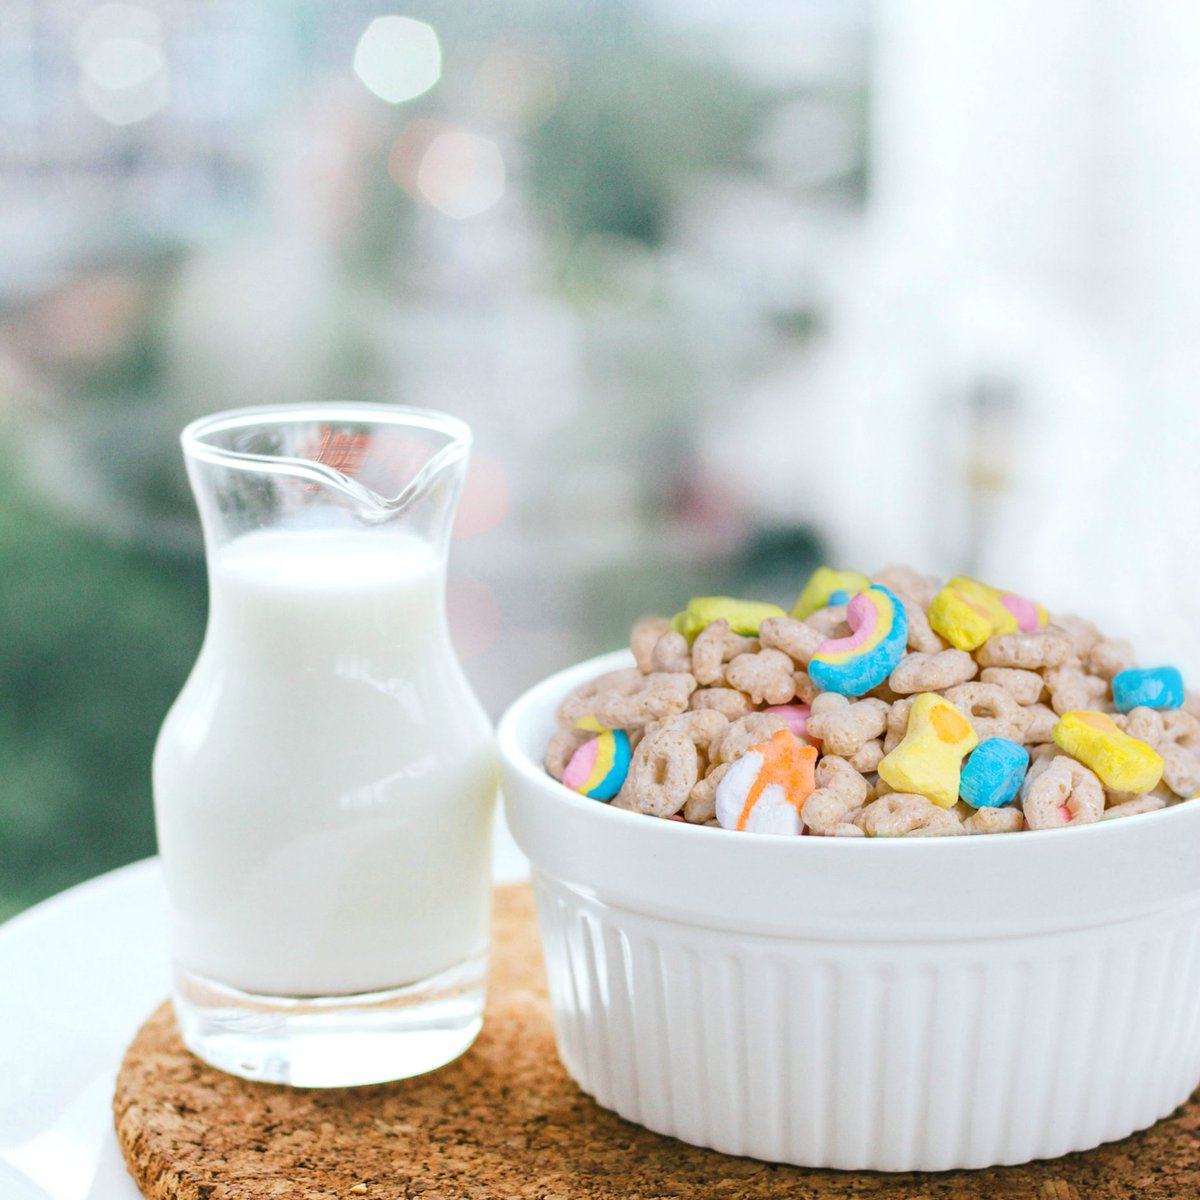 RT @LuckyCharms: The perfect pair. #nationalmilkday #magicallydelicious https://t.co/DTewNtN4DF